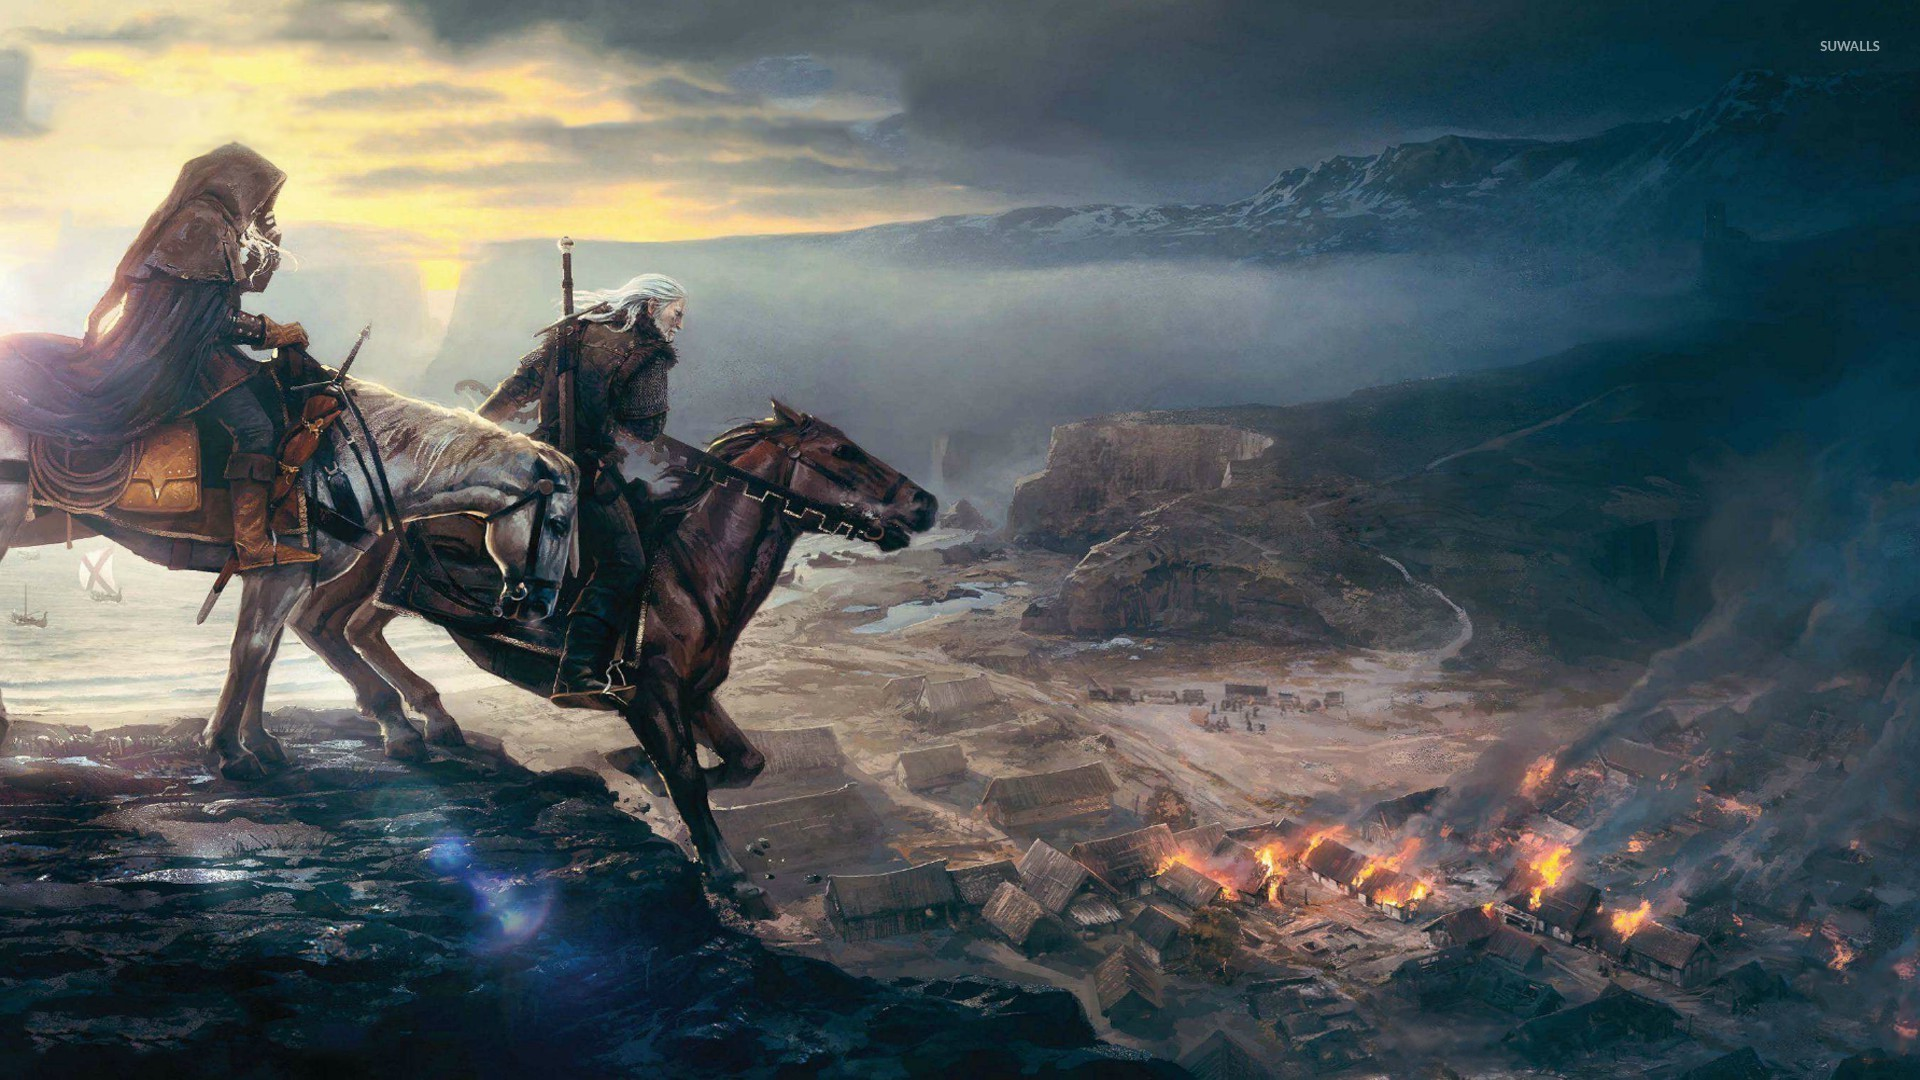 Download Wallpaper 1366×768 The witcher 3, Wild hunt, Forest .